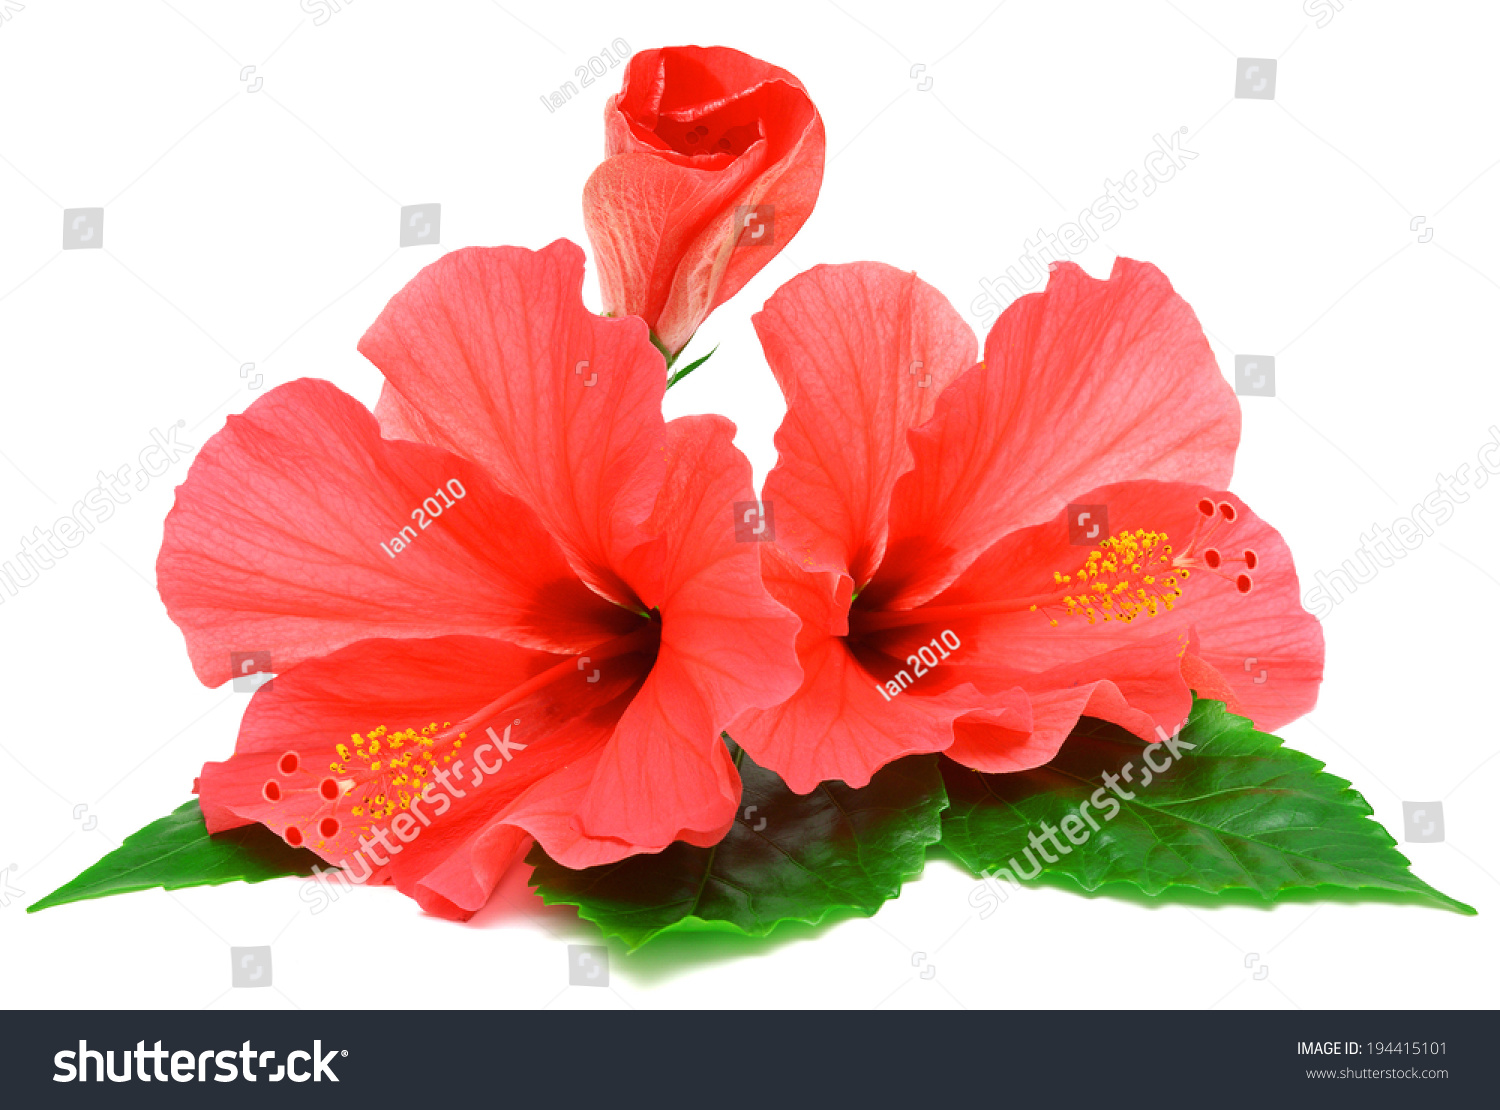 Postcard from hibiscus flowers isolated on white background ez canvas id 194415101 izmirmasajfo